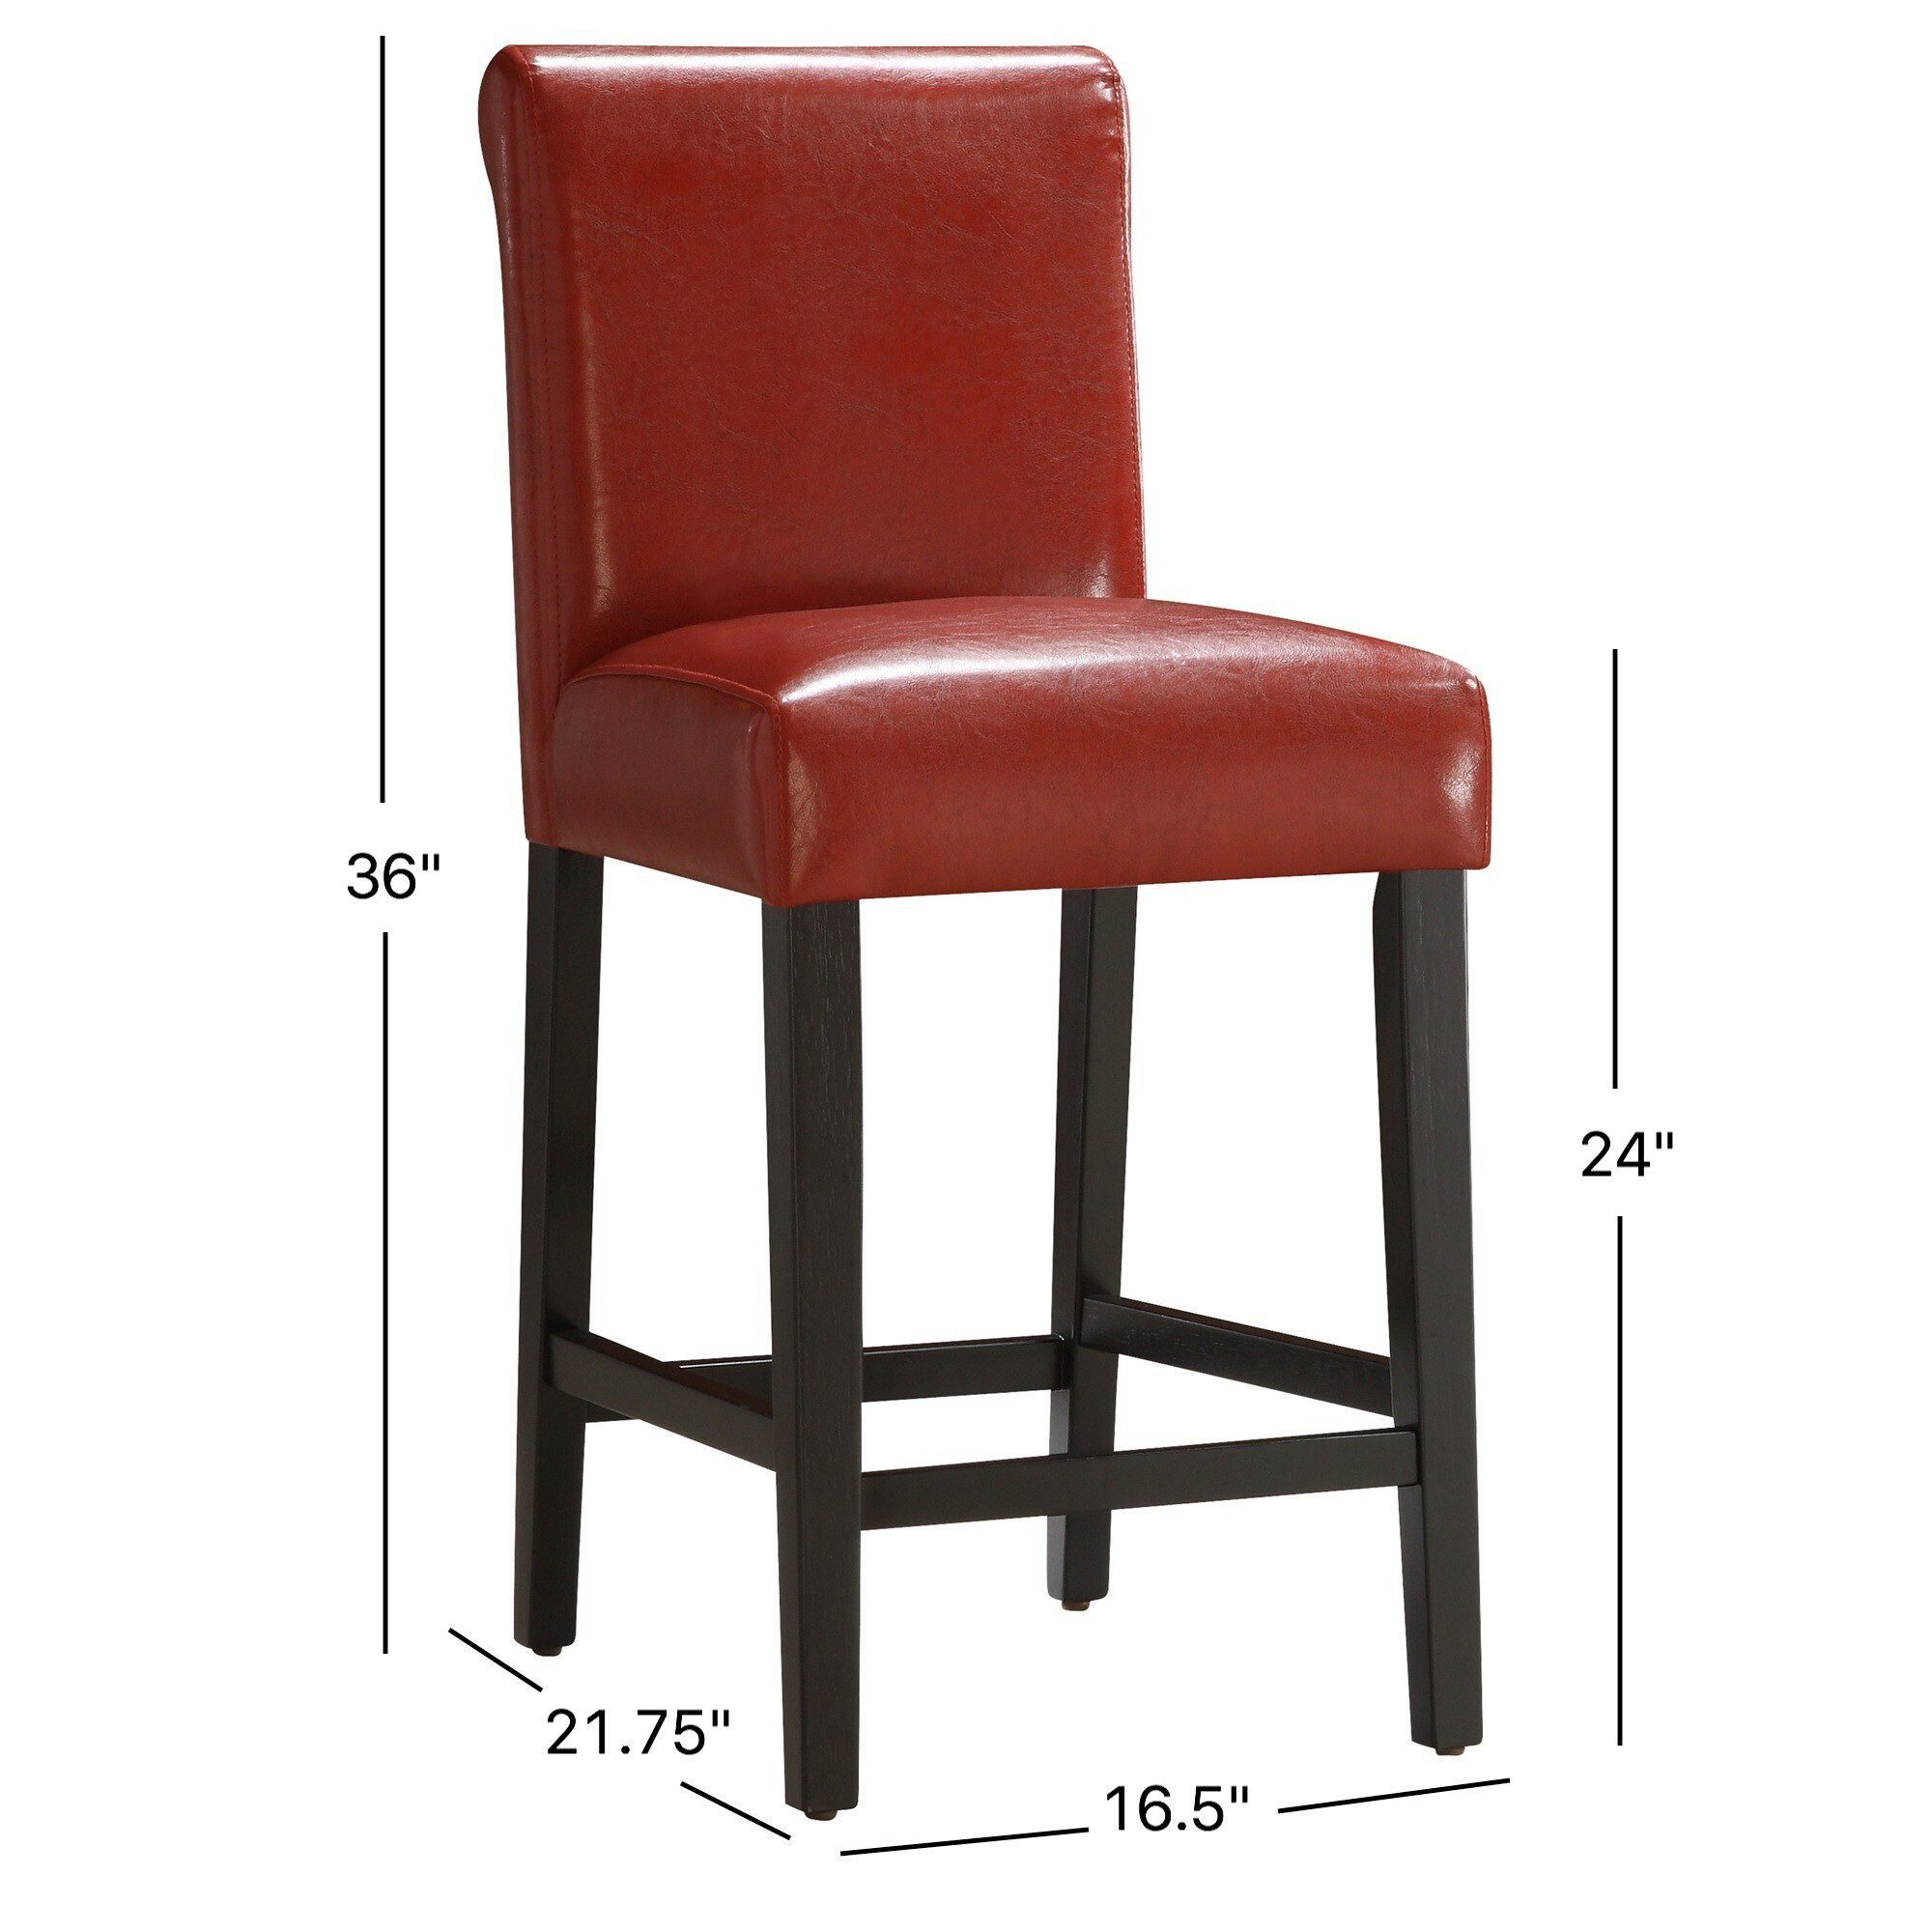 four of relaix product stools italy chairish leather stool bar set barstools red fasem